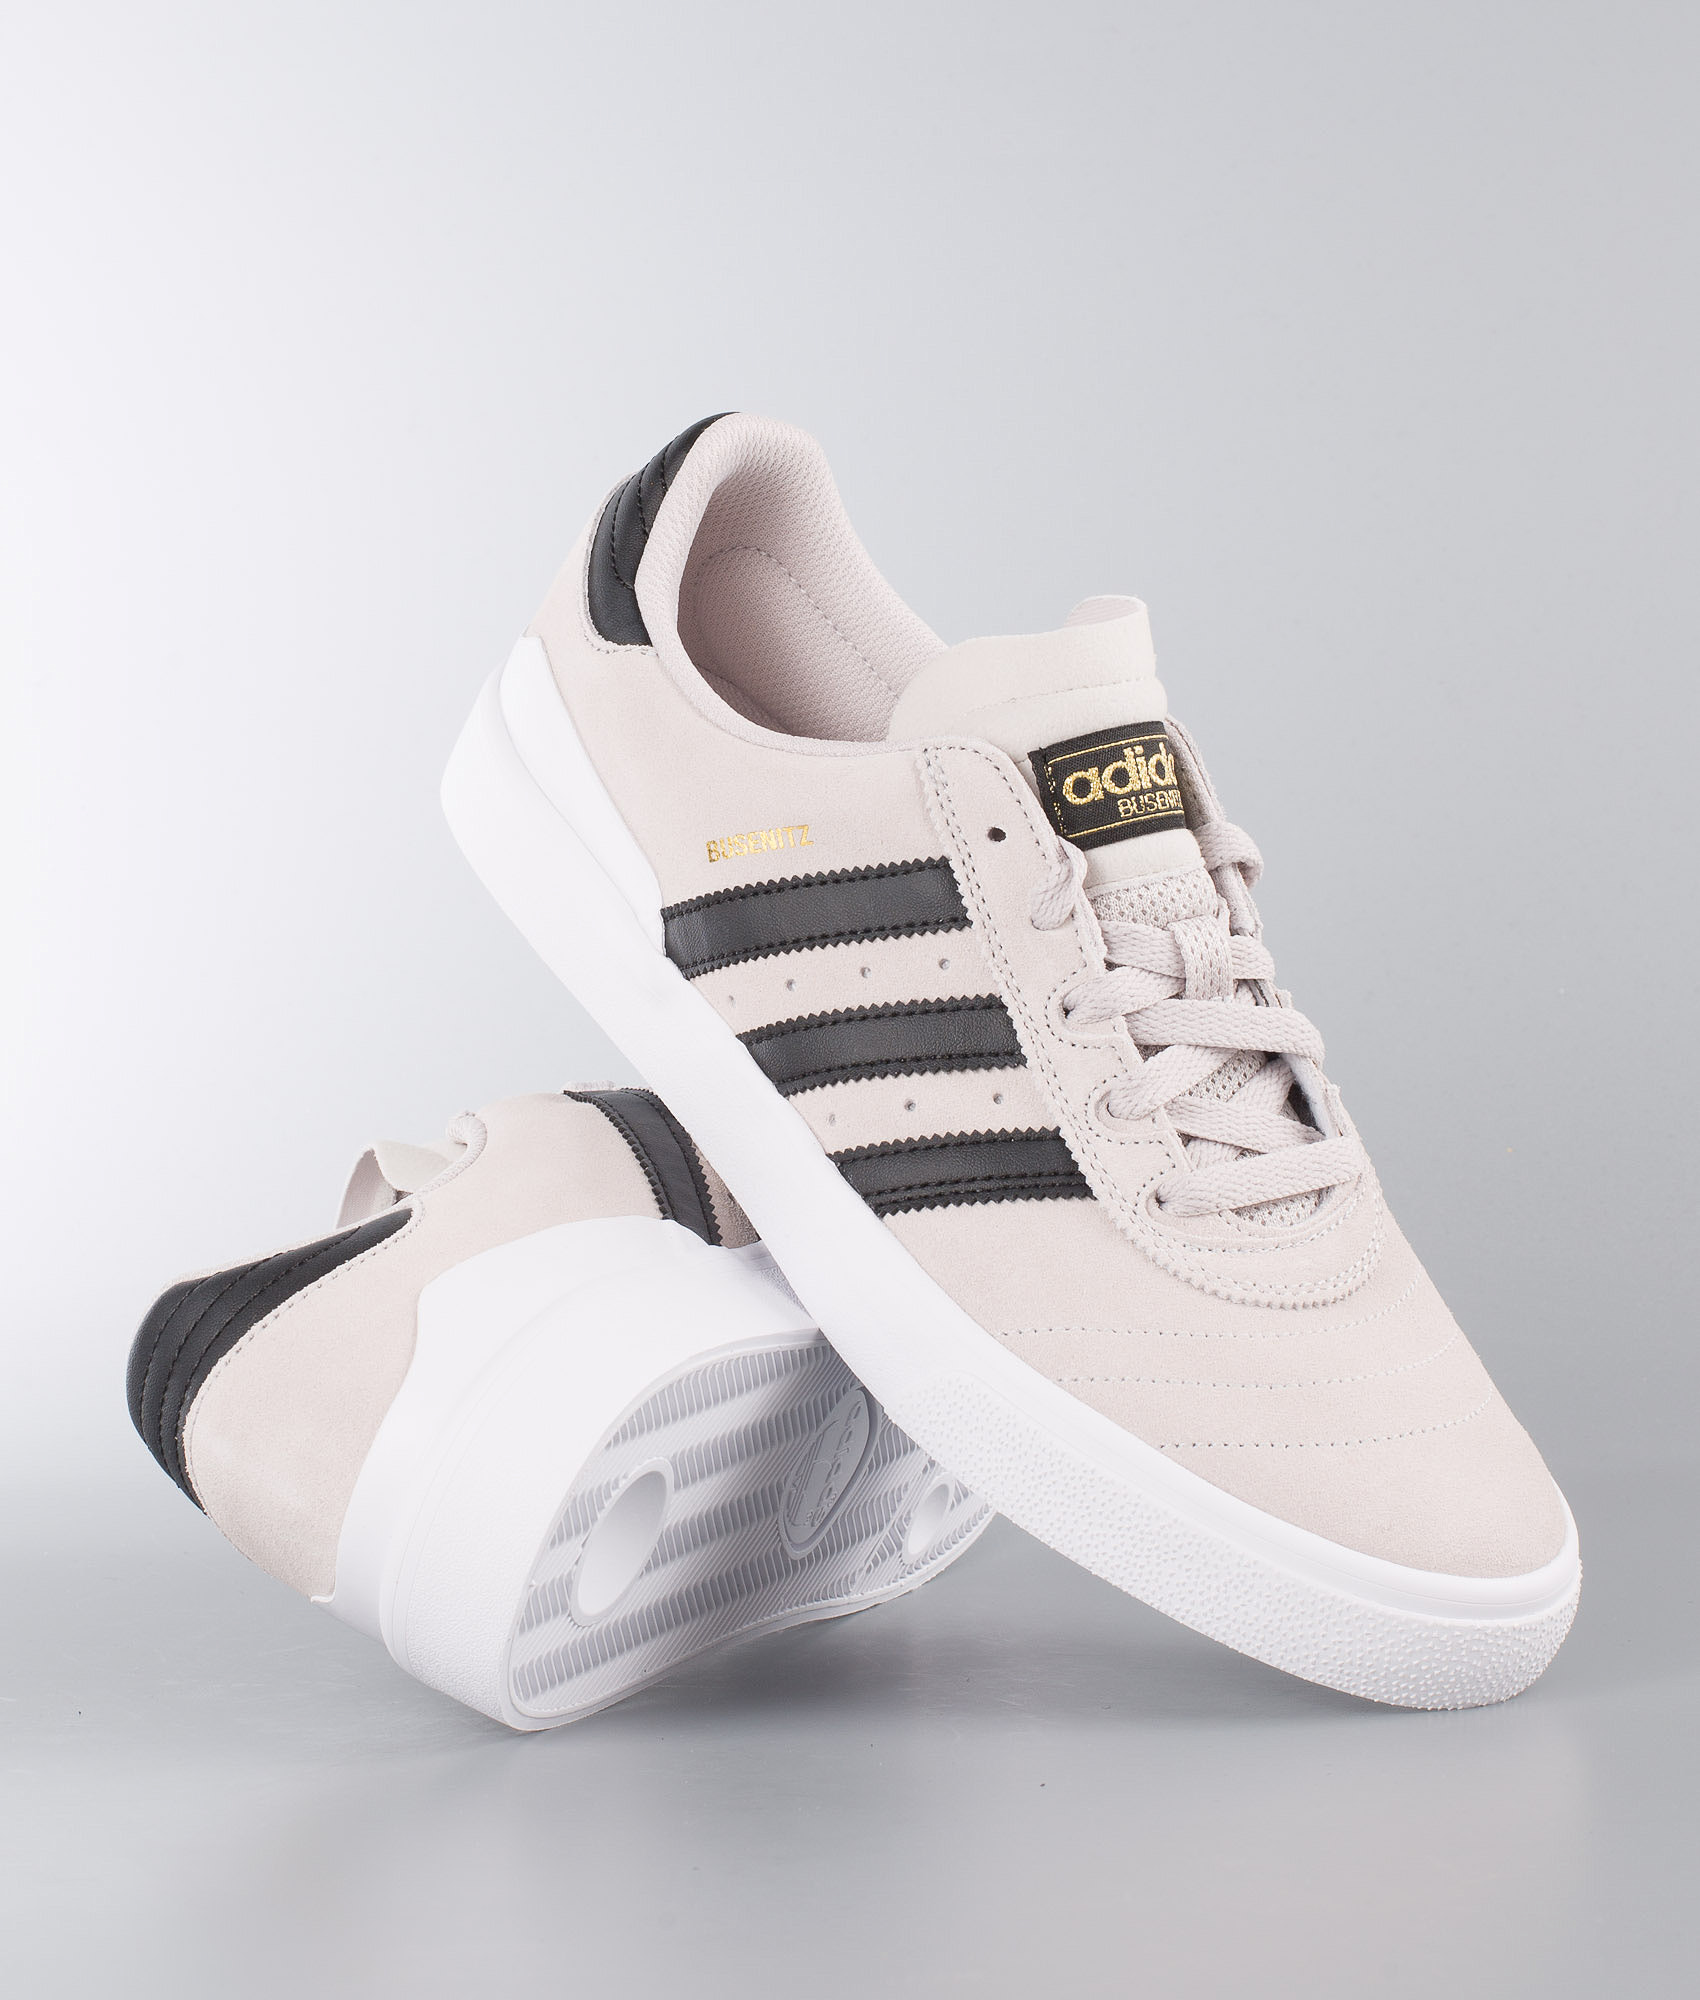 new product 3d731 8a214 Adidas Skateboarding Busenitz Vulc Shoes